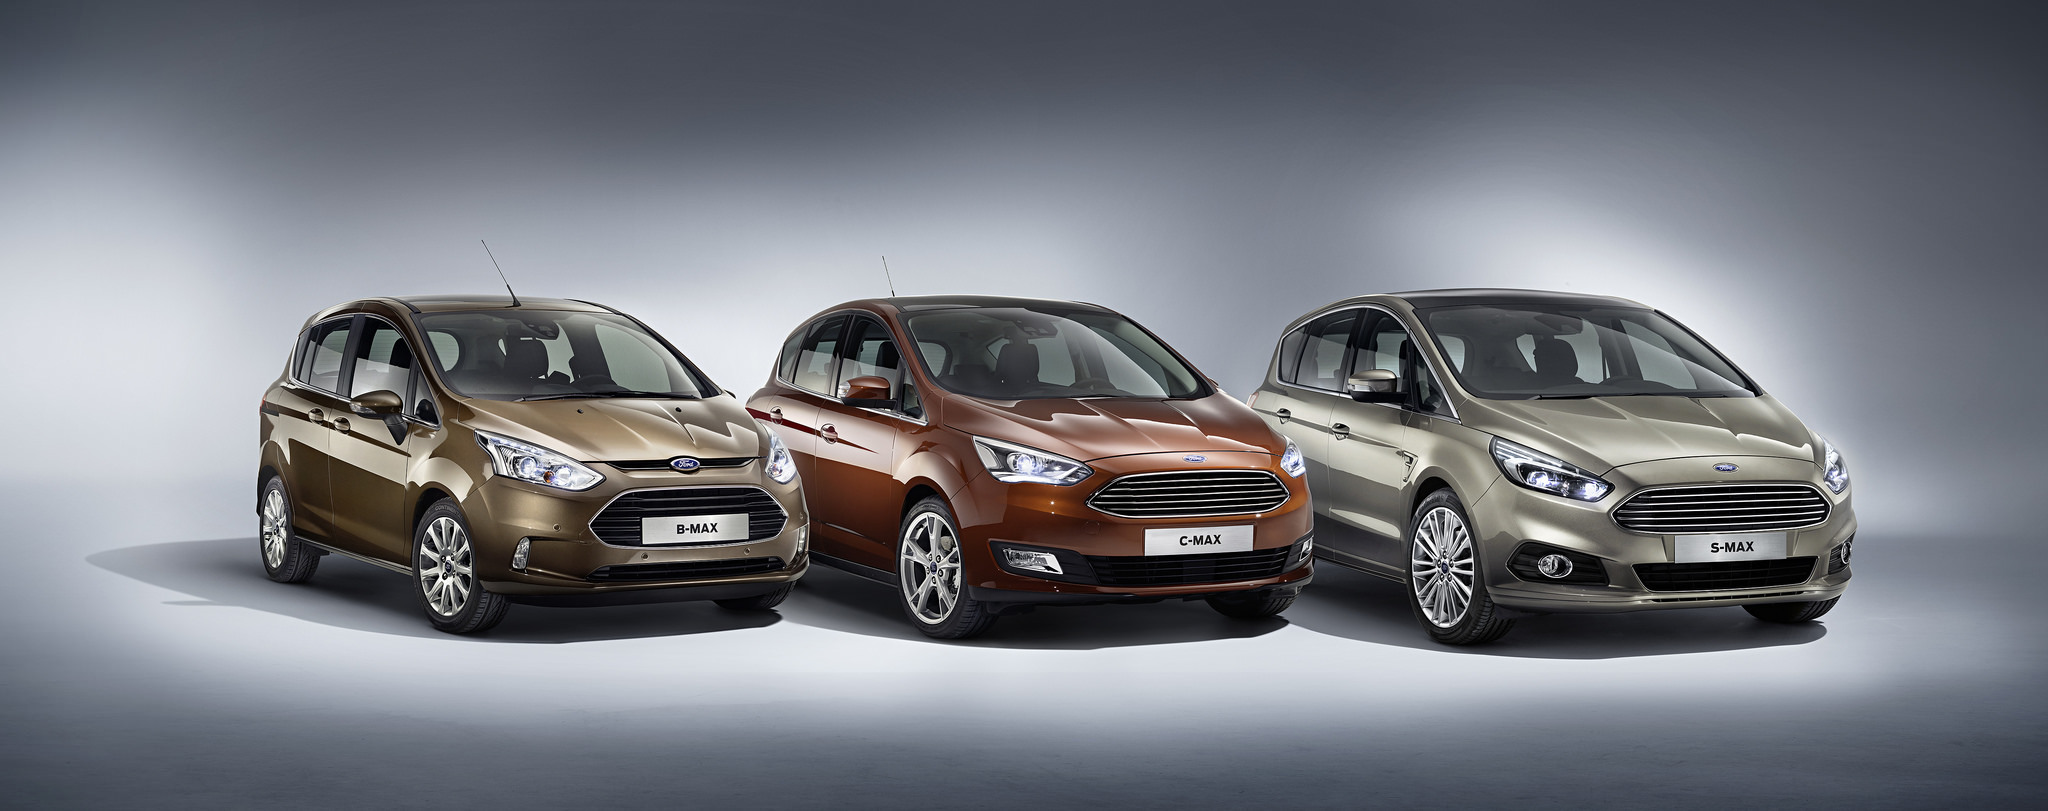 2014 - [Ford] C-Max Restylé - Page 4 Ford-c-max-2015-2-1